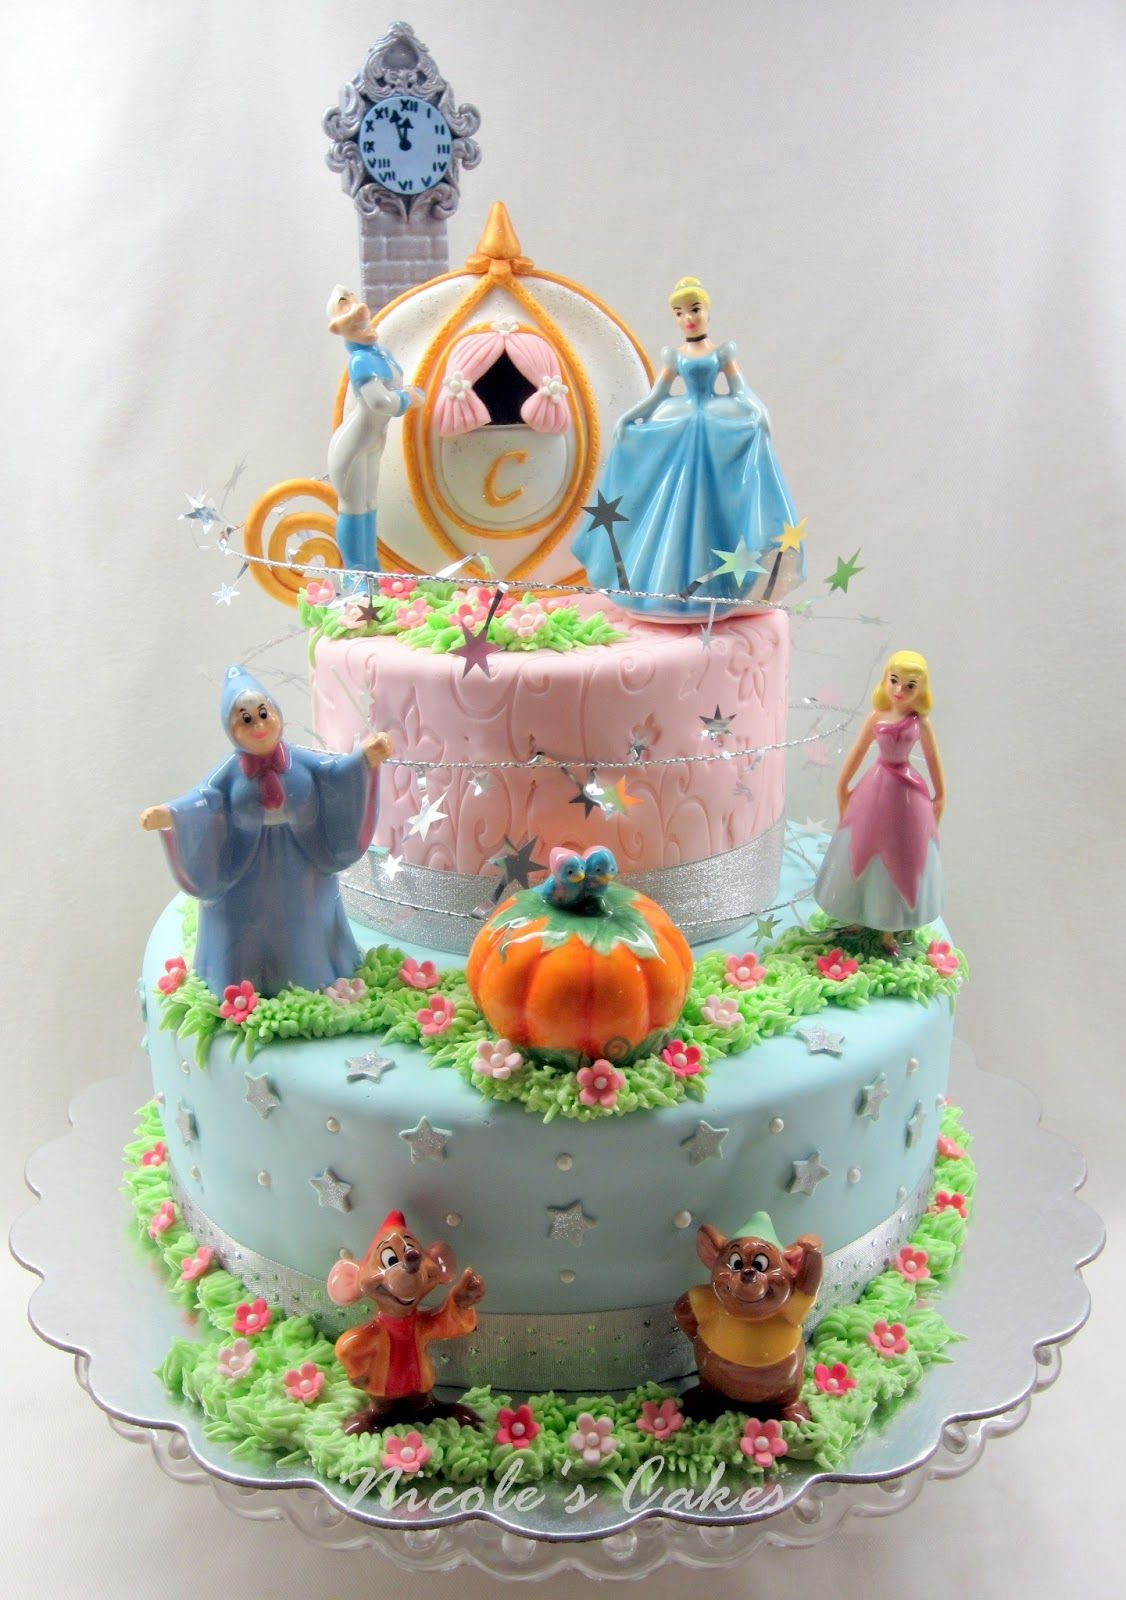 Magnificent The Cinderella Story A Birthday Cake Gateaux Cendrillon Funny Birthday Cards Online Overcheapnameinfo